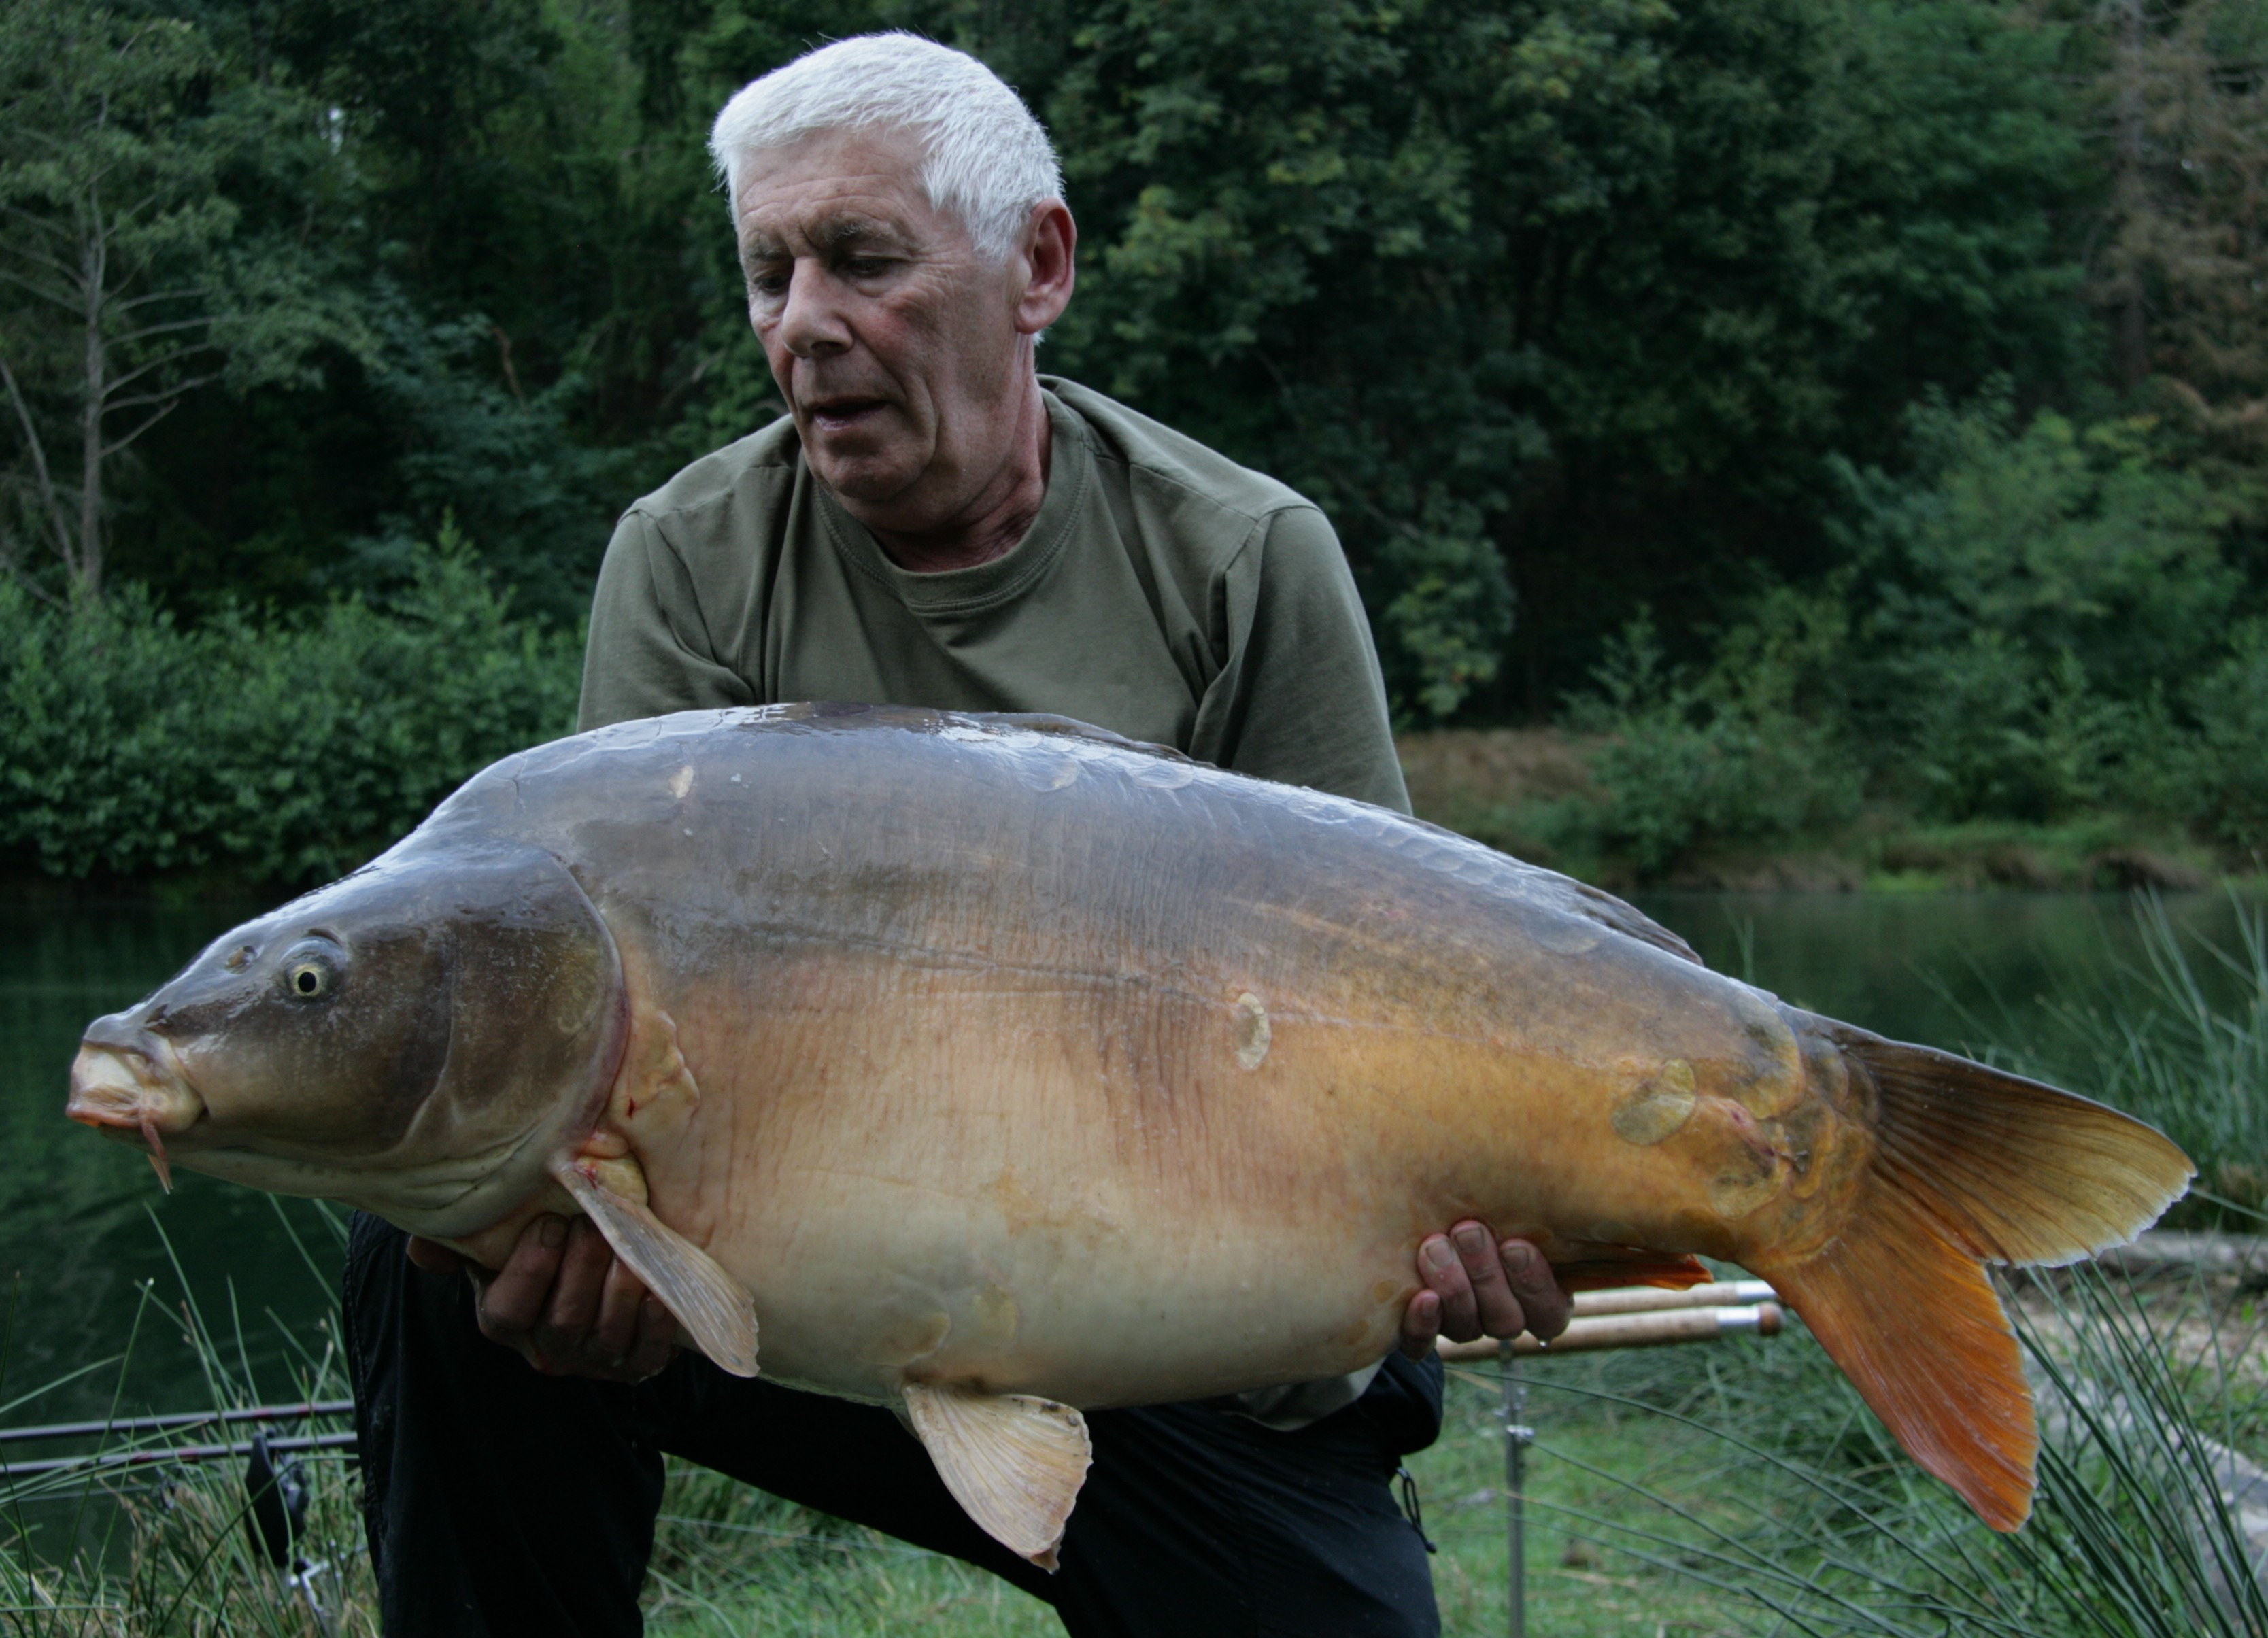 https://www.puyravaudcarp.com/wp-content/uploads/2016/10/49.074.jpg